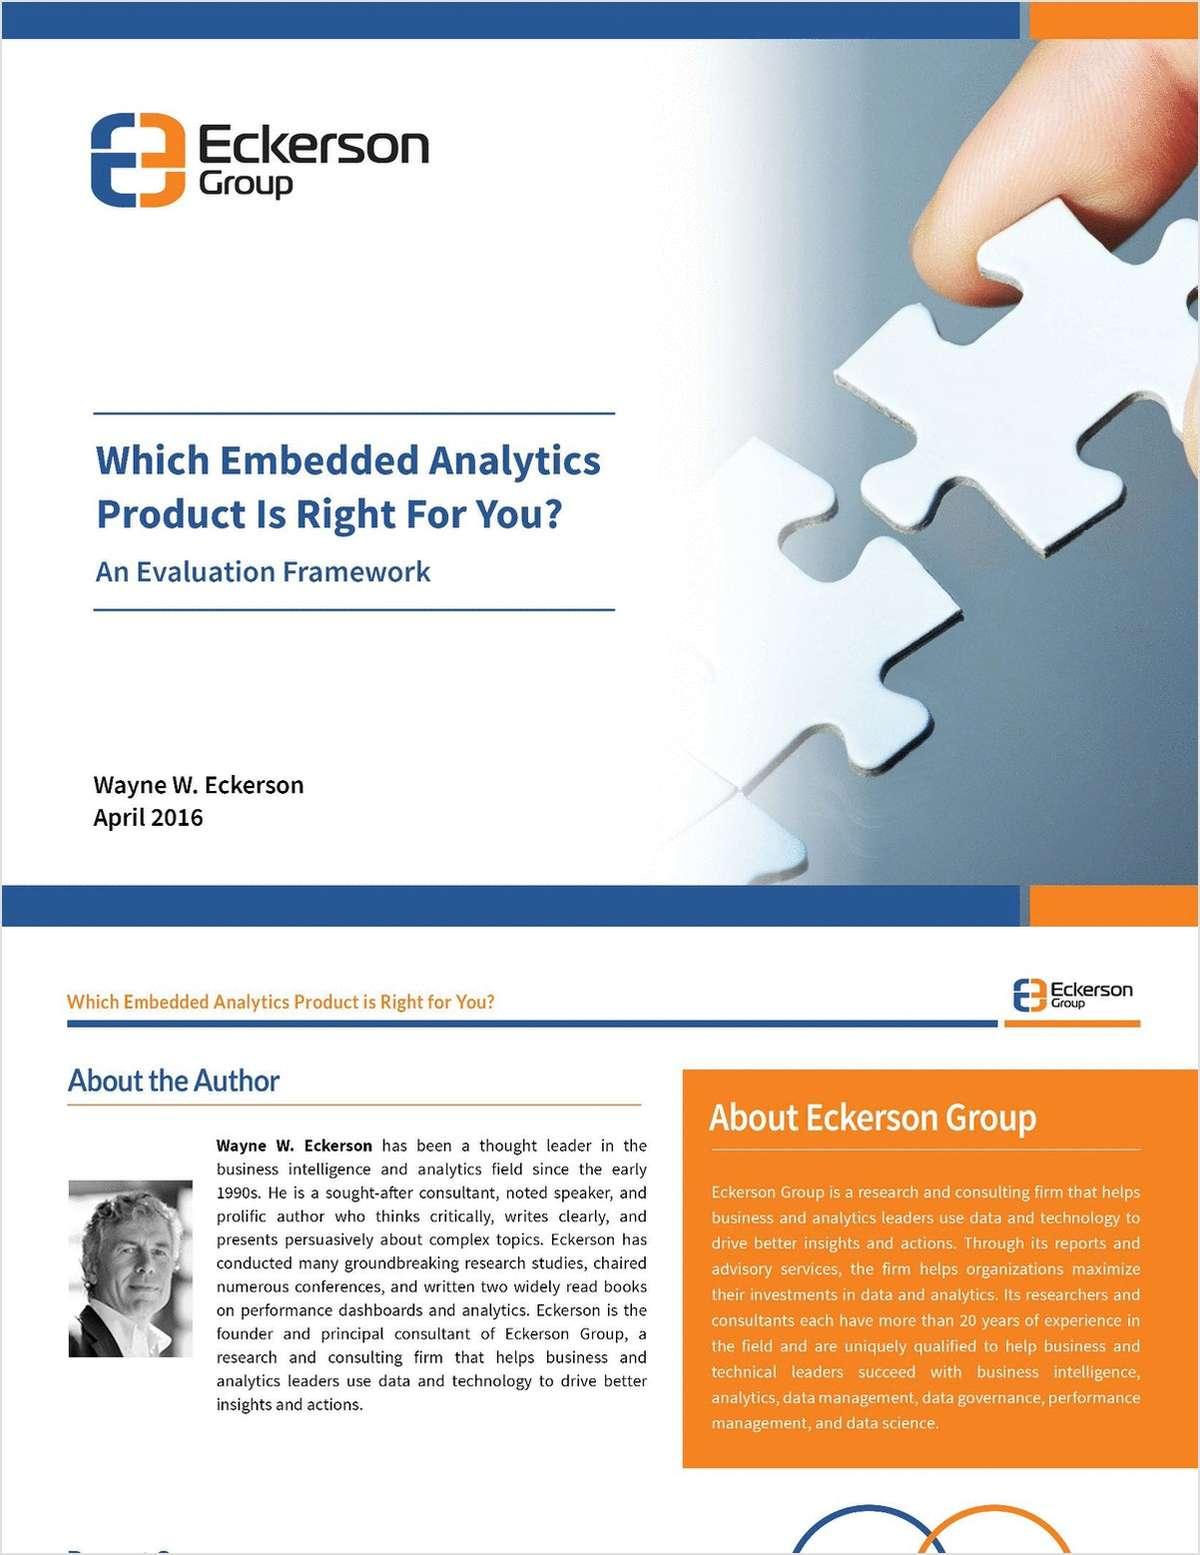 Eckerson Group Which Embedded Analytics Tool is Right For You